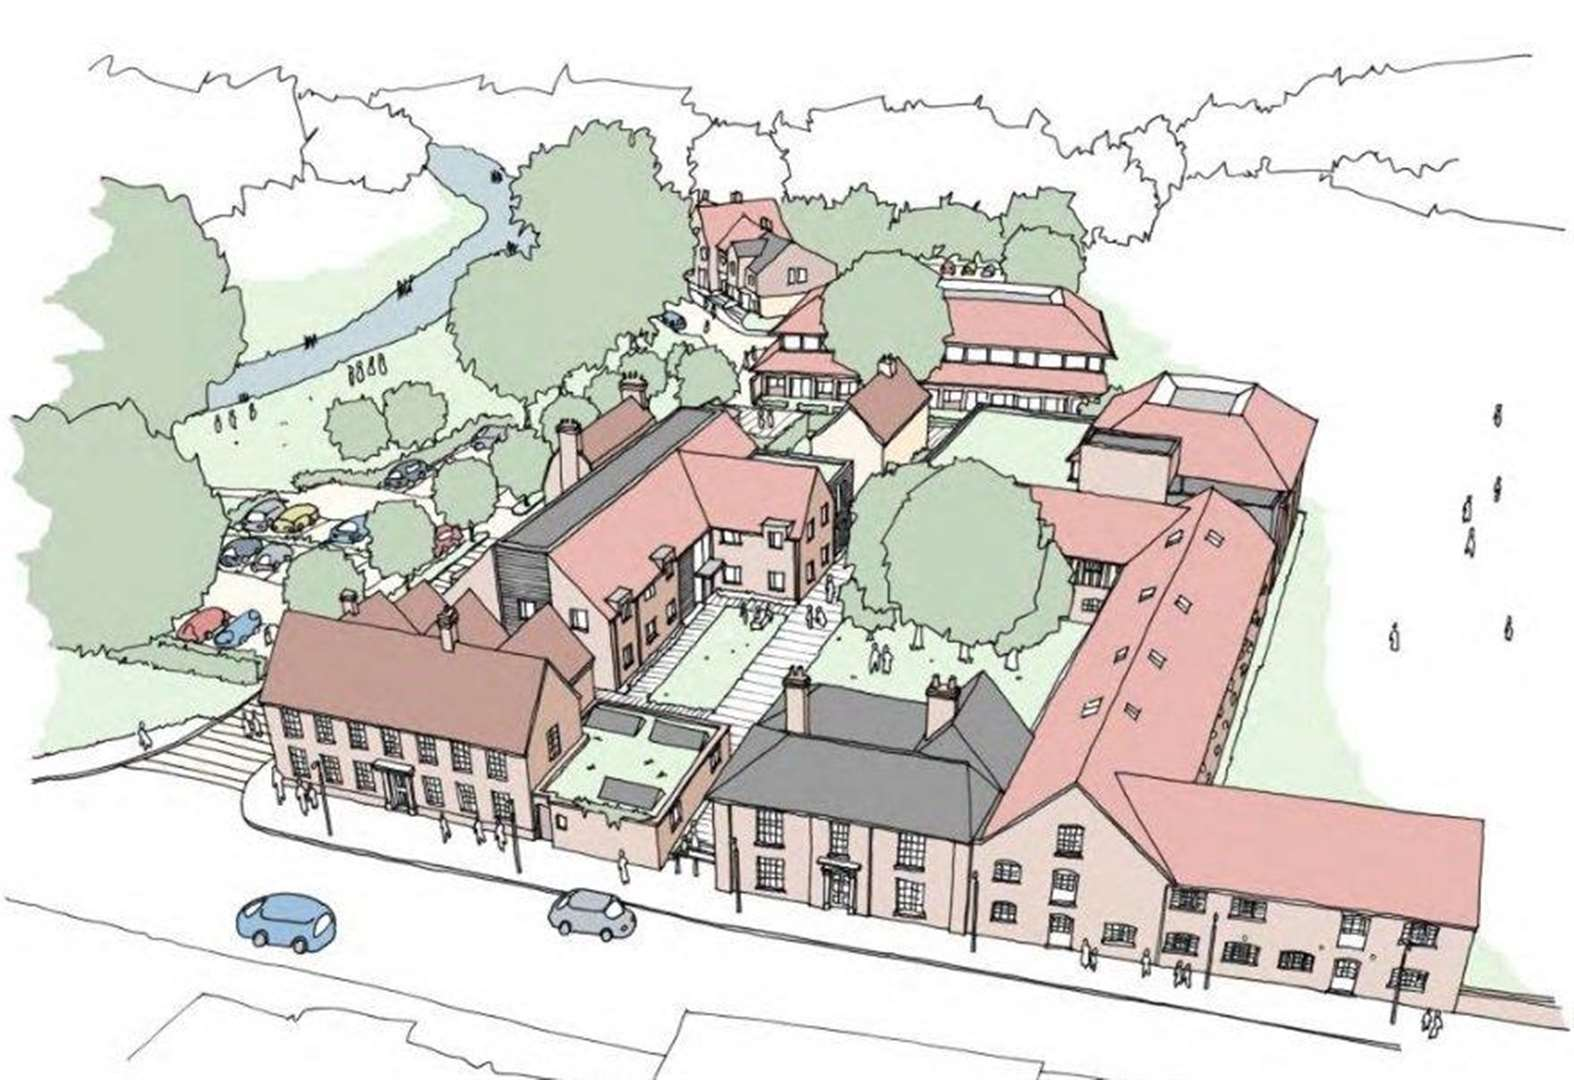 Babergh council votes to draw up plans to turn former Hadleigh HQ into 58 homes